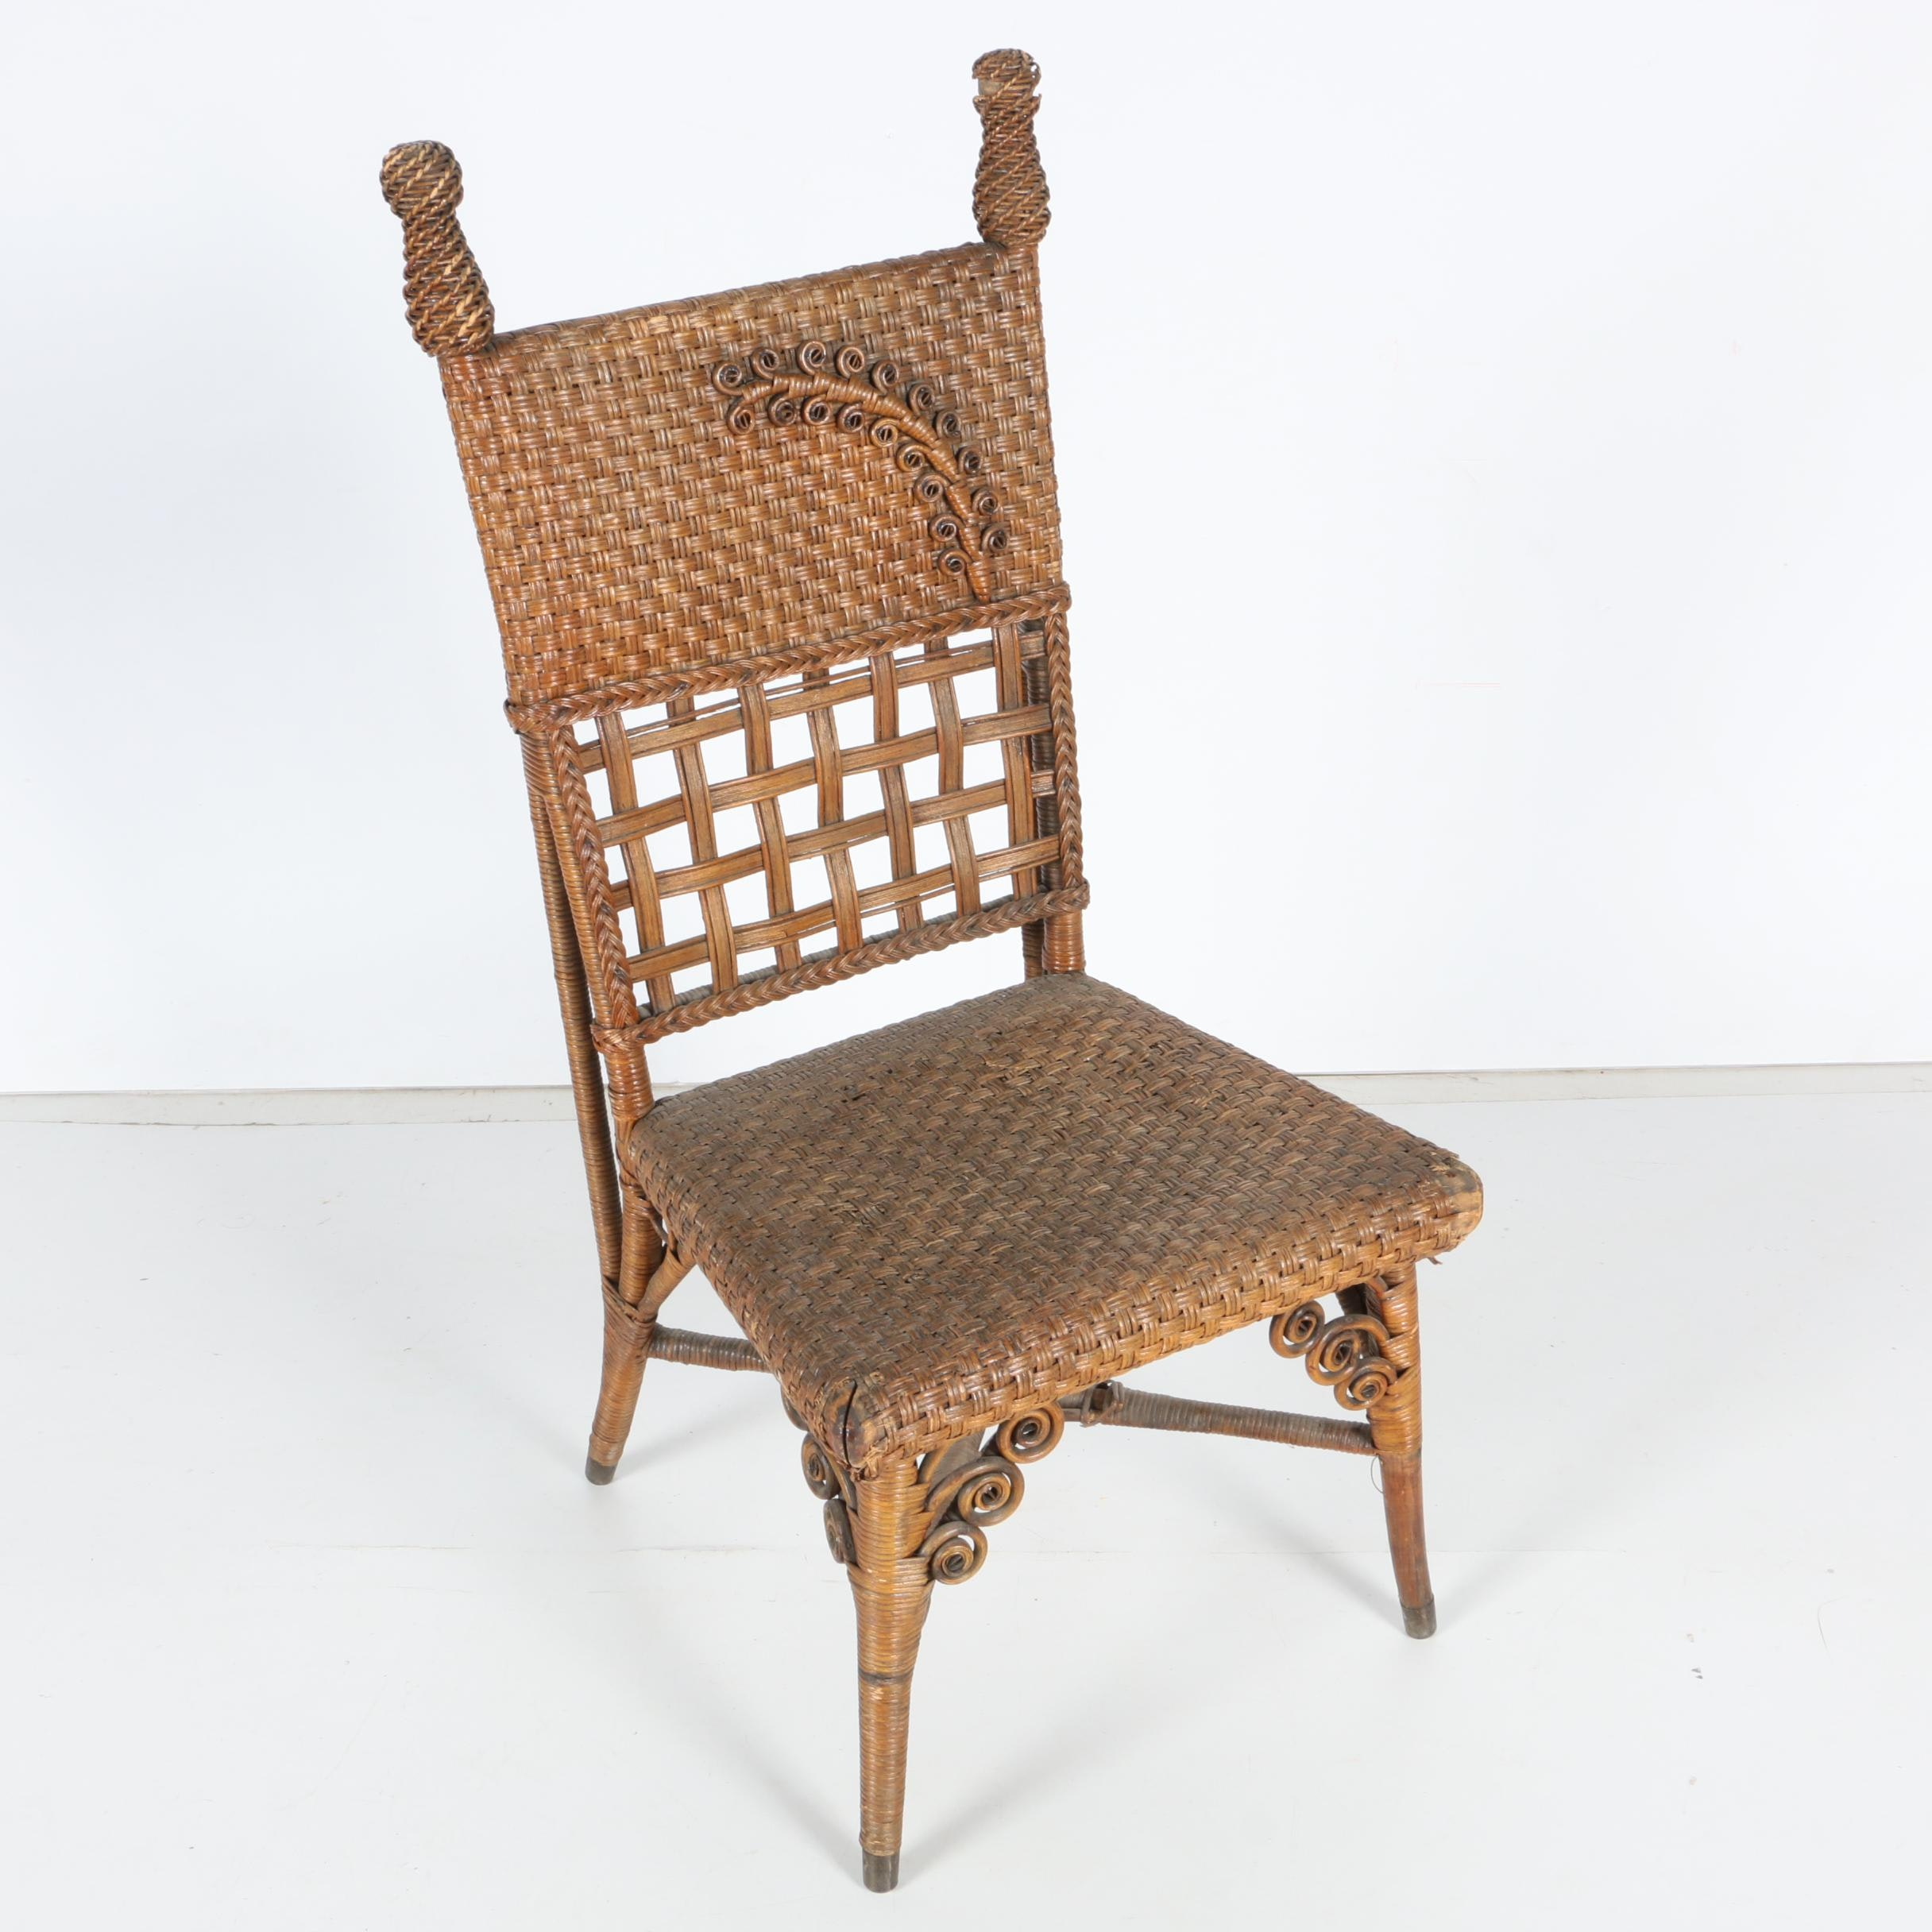 Antique Edwardian Style Woven Wicker and Bamboo Chair